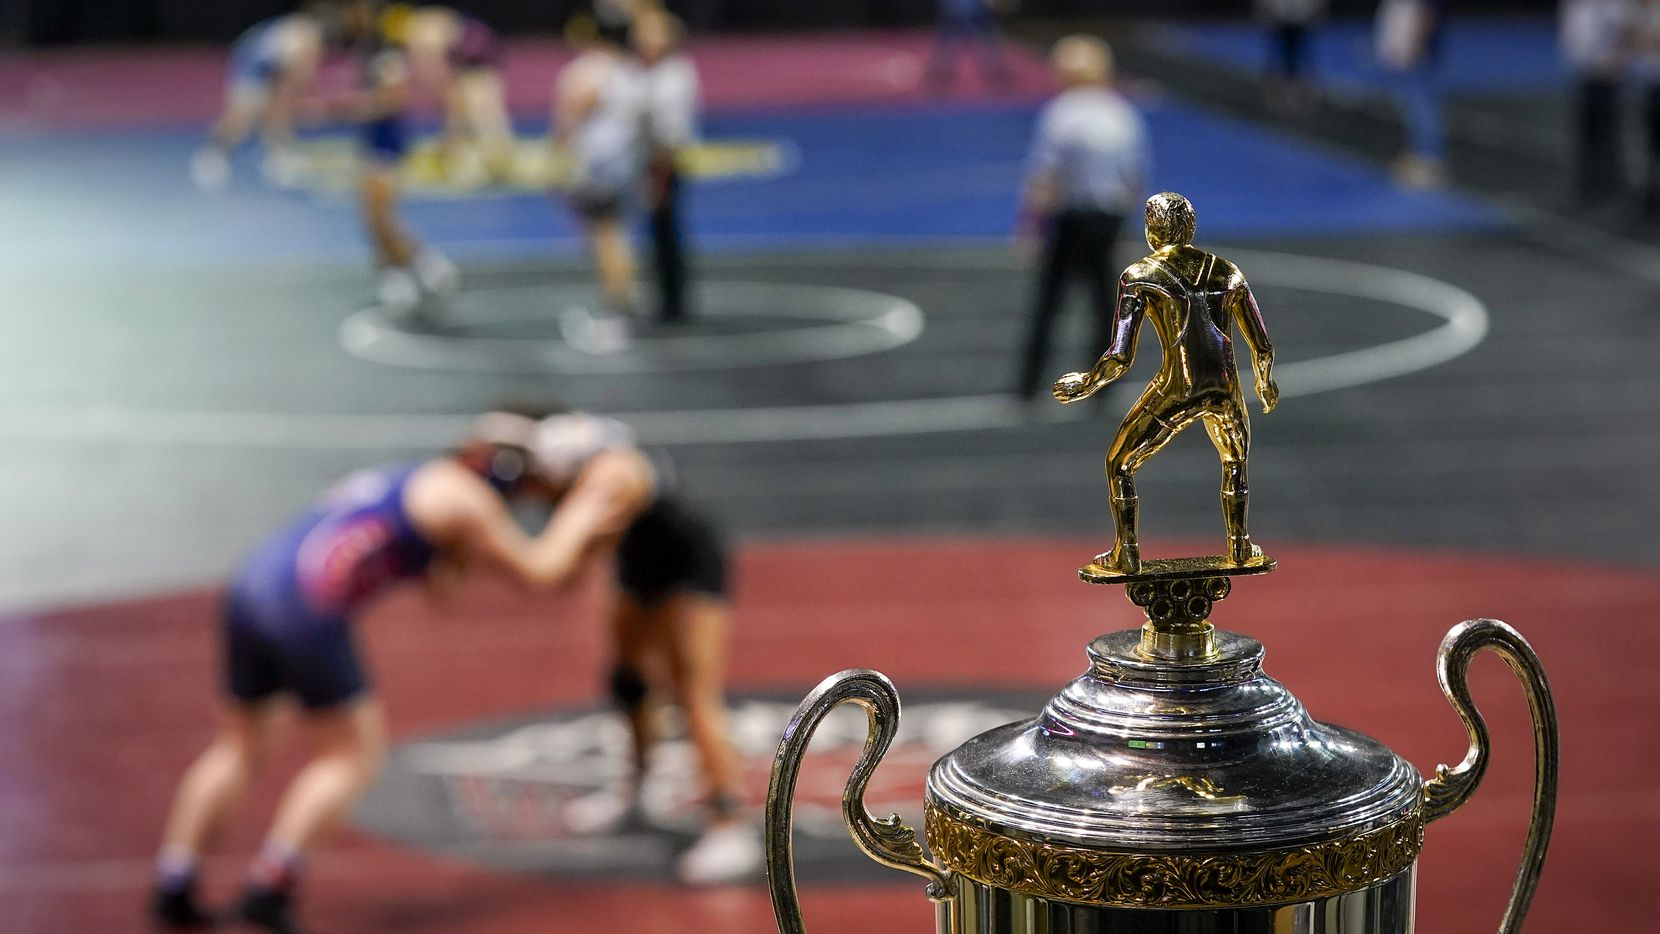 The championship trophy is seen as wrestlers compete during the NCWA  national championships at the Allen Event Center on Friday, March 13, 2020, in Allen, Texas. The event center was used as a filming location for a new wrestling film released this week.